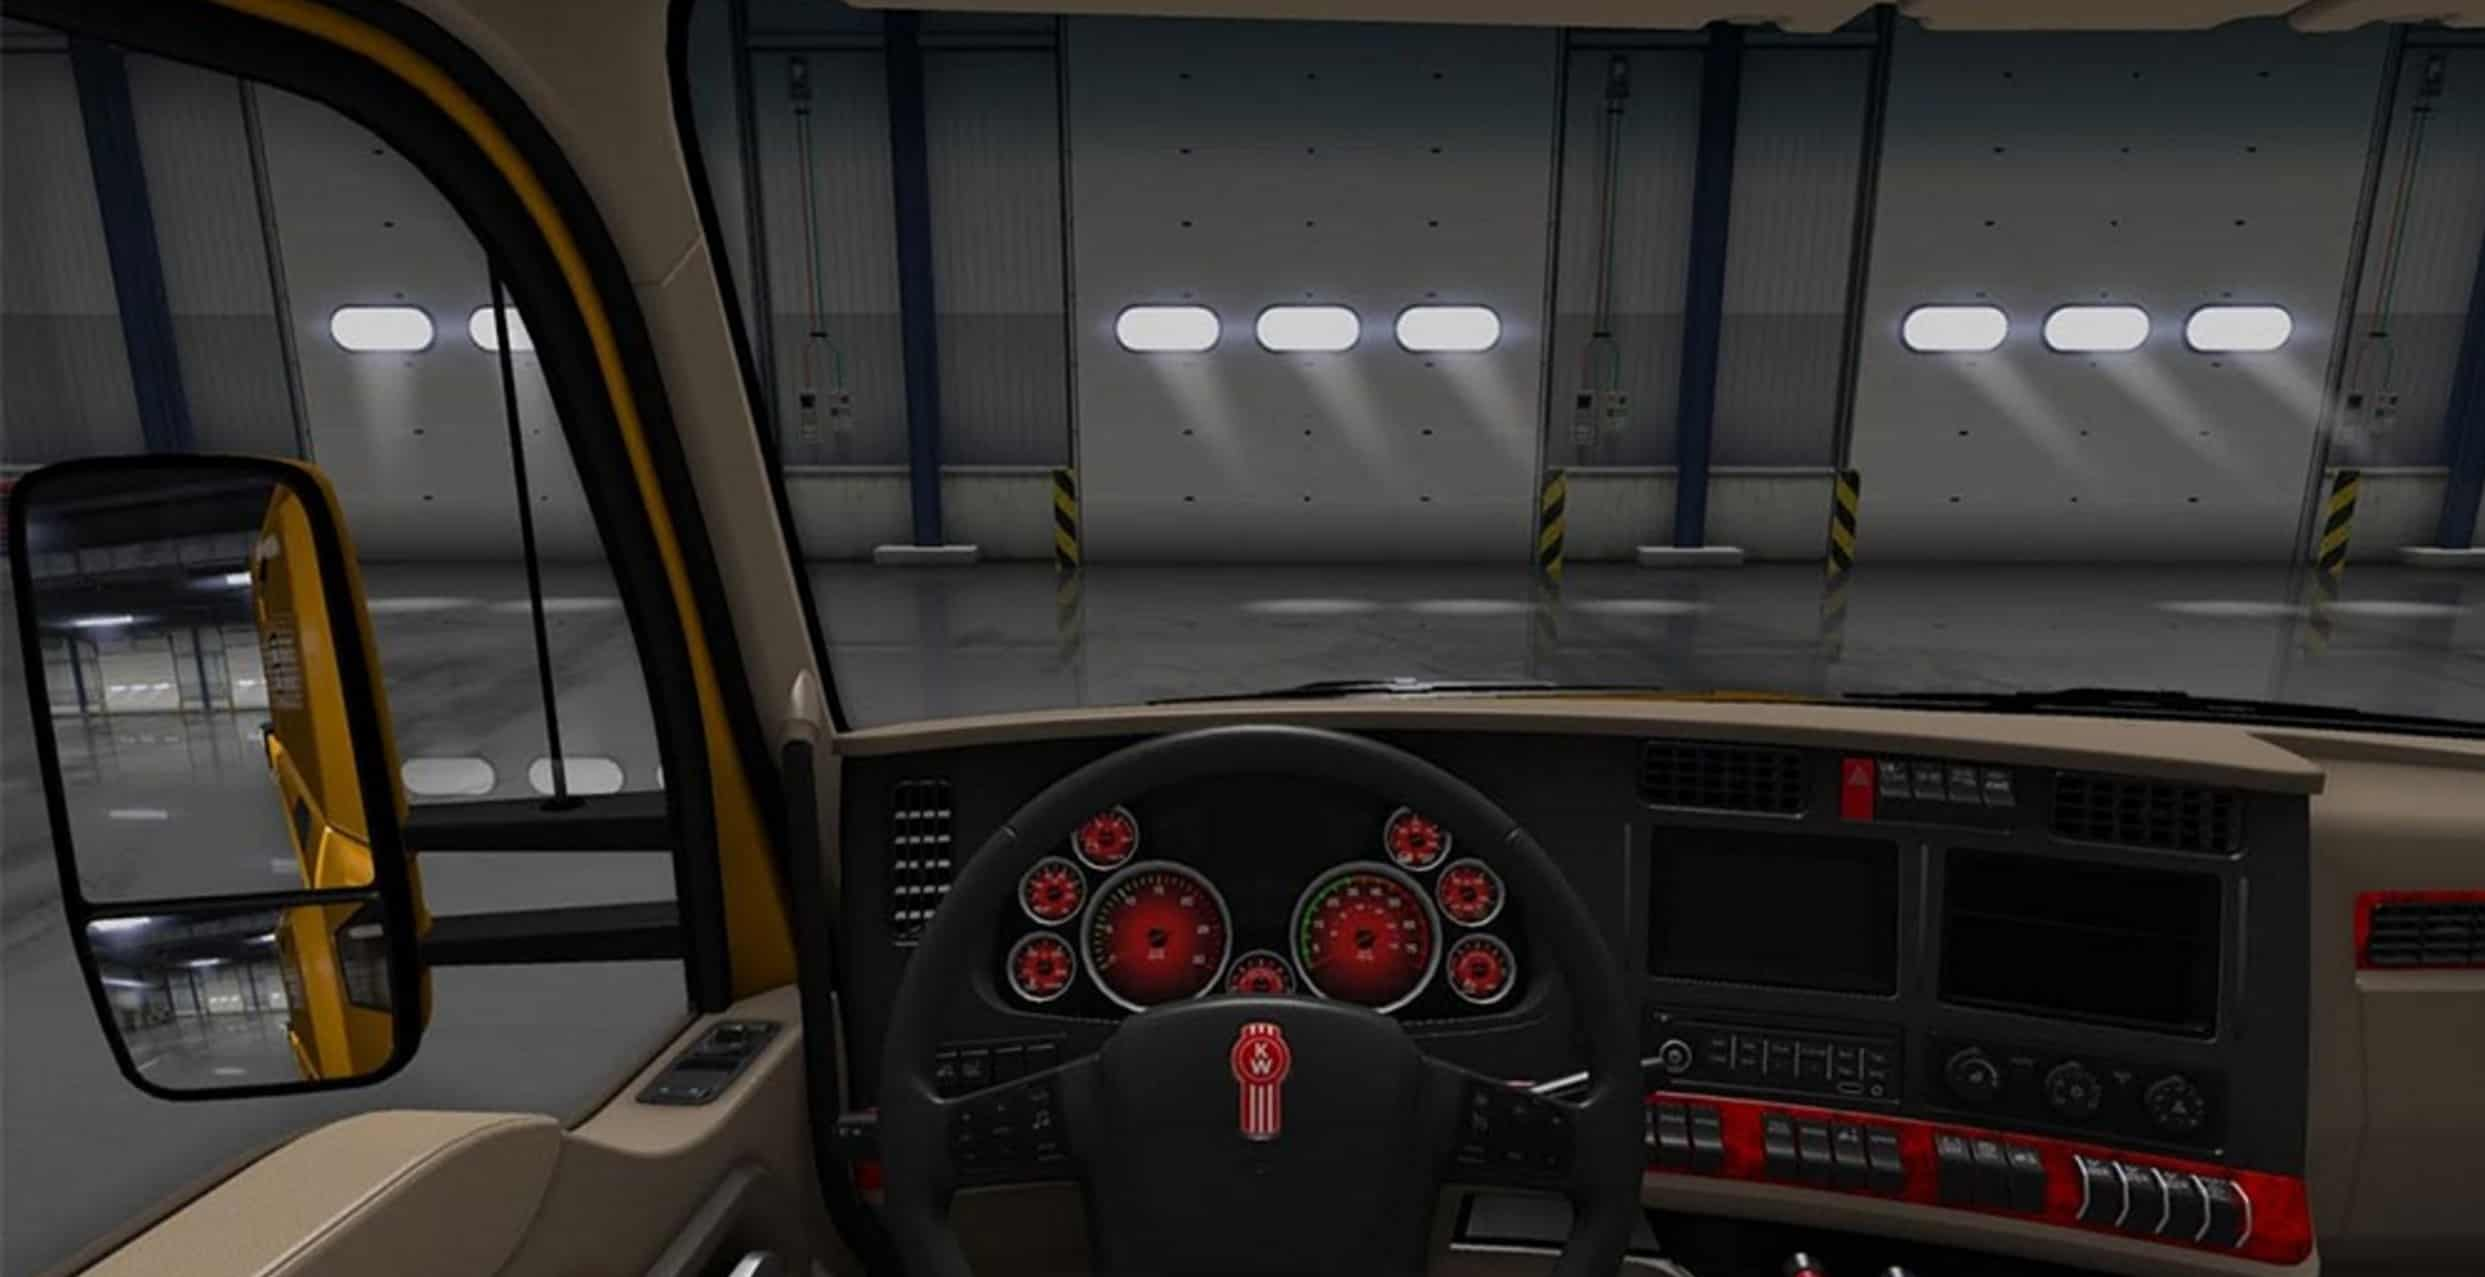 Kenworth t680 Dashboard red Mod 2 kenworth t680 dashboard red mod american truck simulator mod 2016 kenworth t680 fuse box diagram at love-stories.co